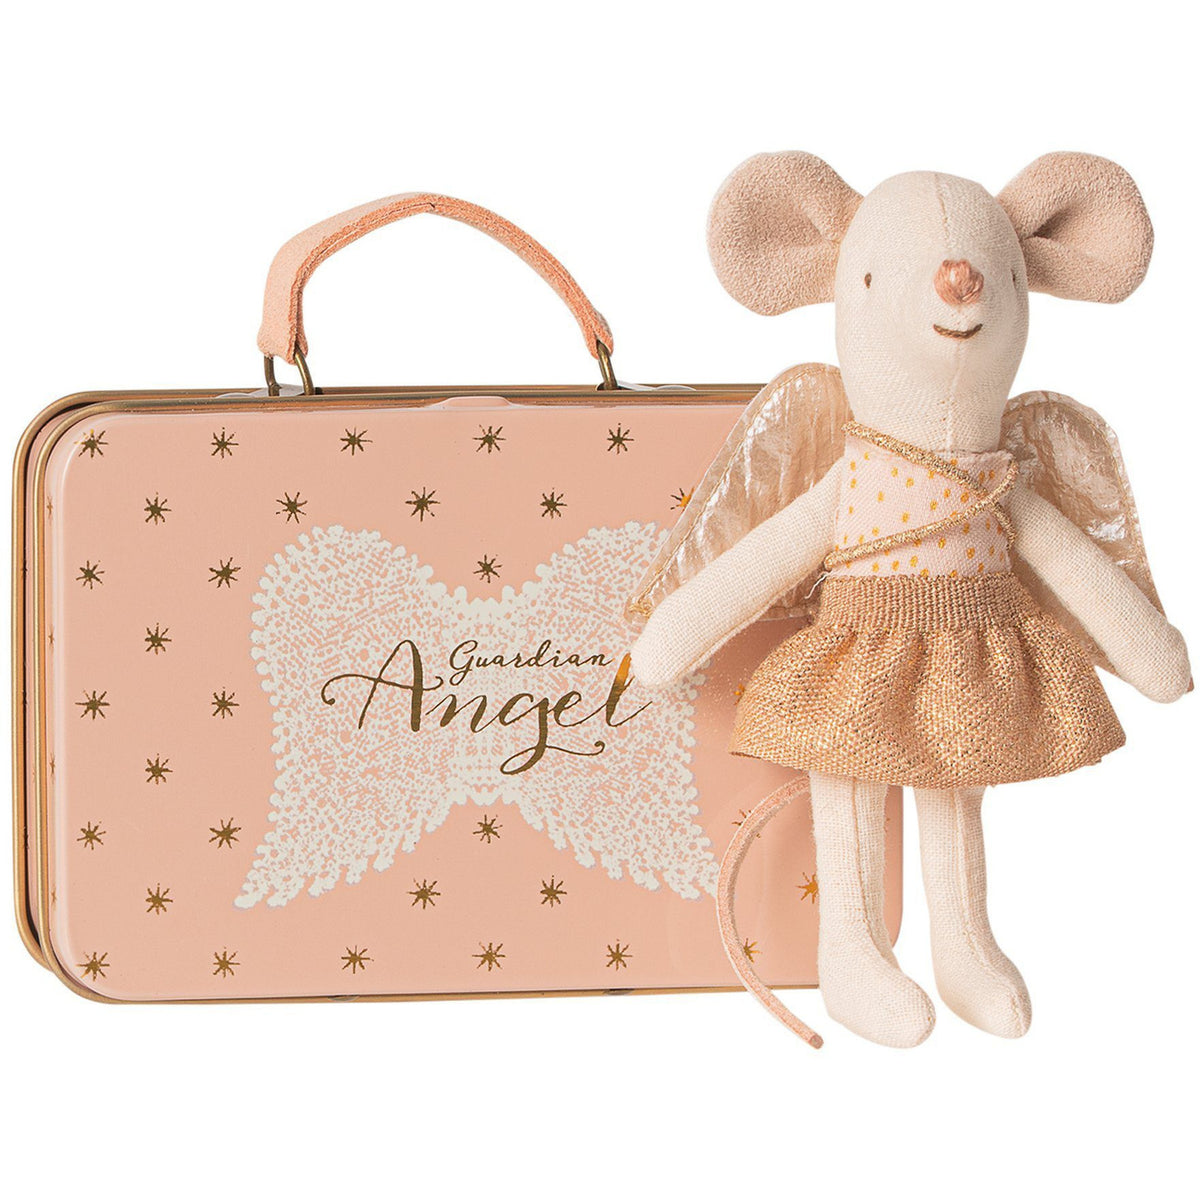 Maileg Little Sister Guardian Angel in Suitcase